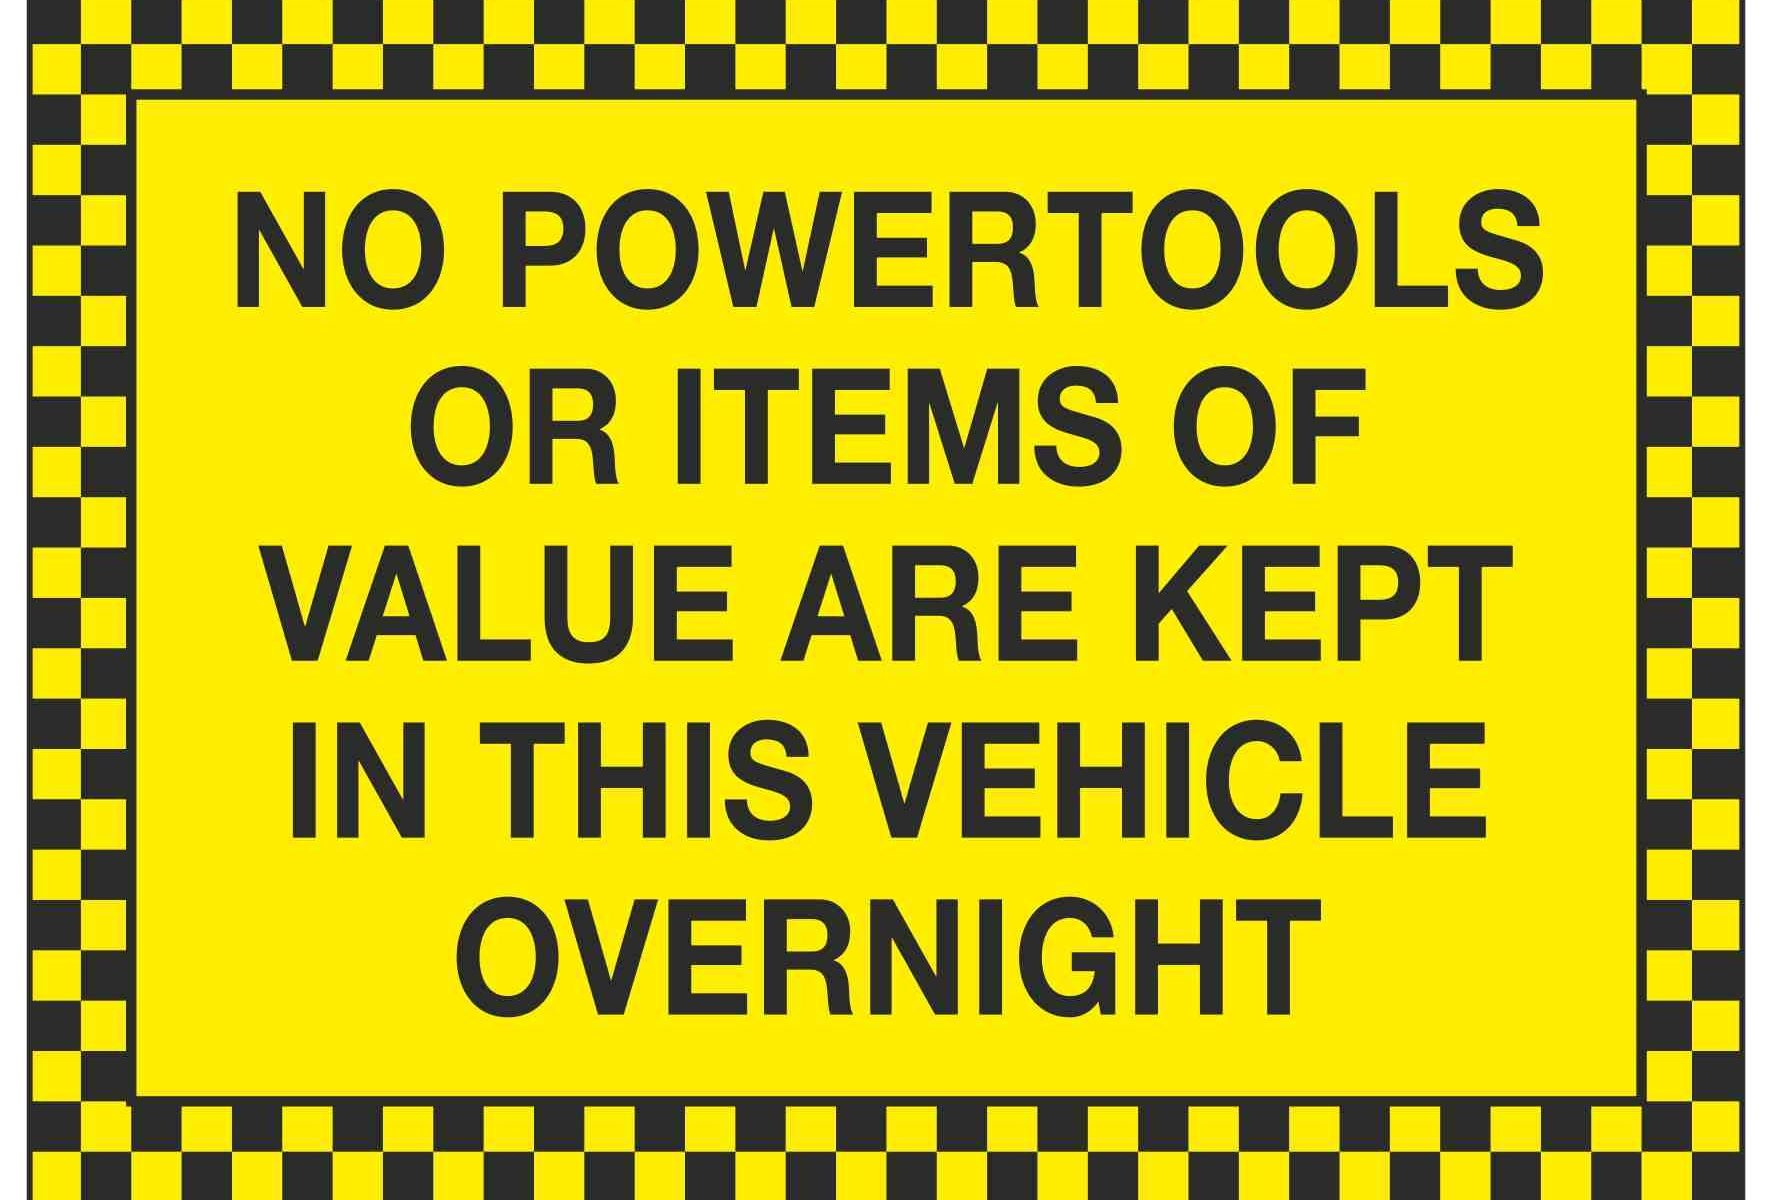 NO POWERTOOLS OR ITEMS OF VALUE ARE KEPT IN THIS VEHICLE OVERNIGHT